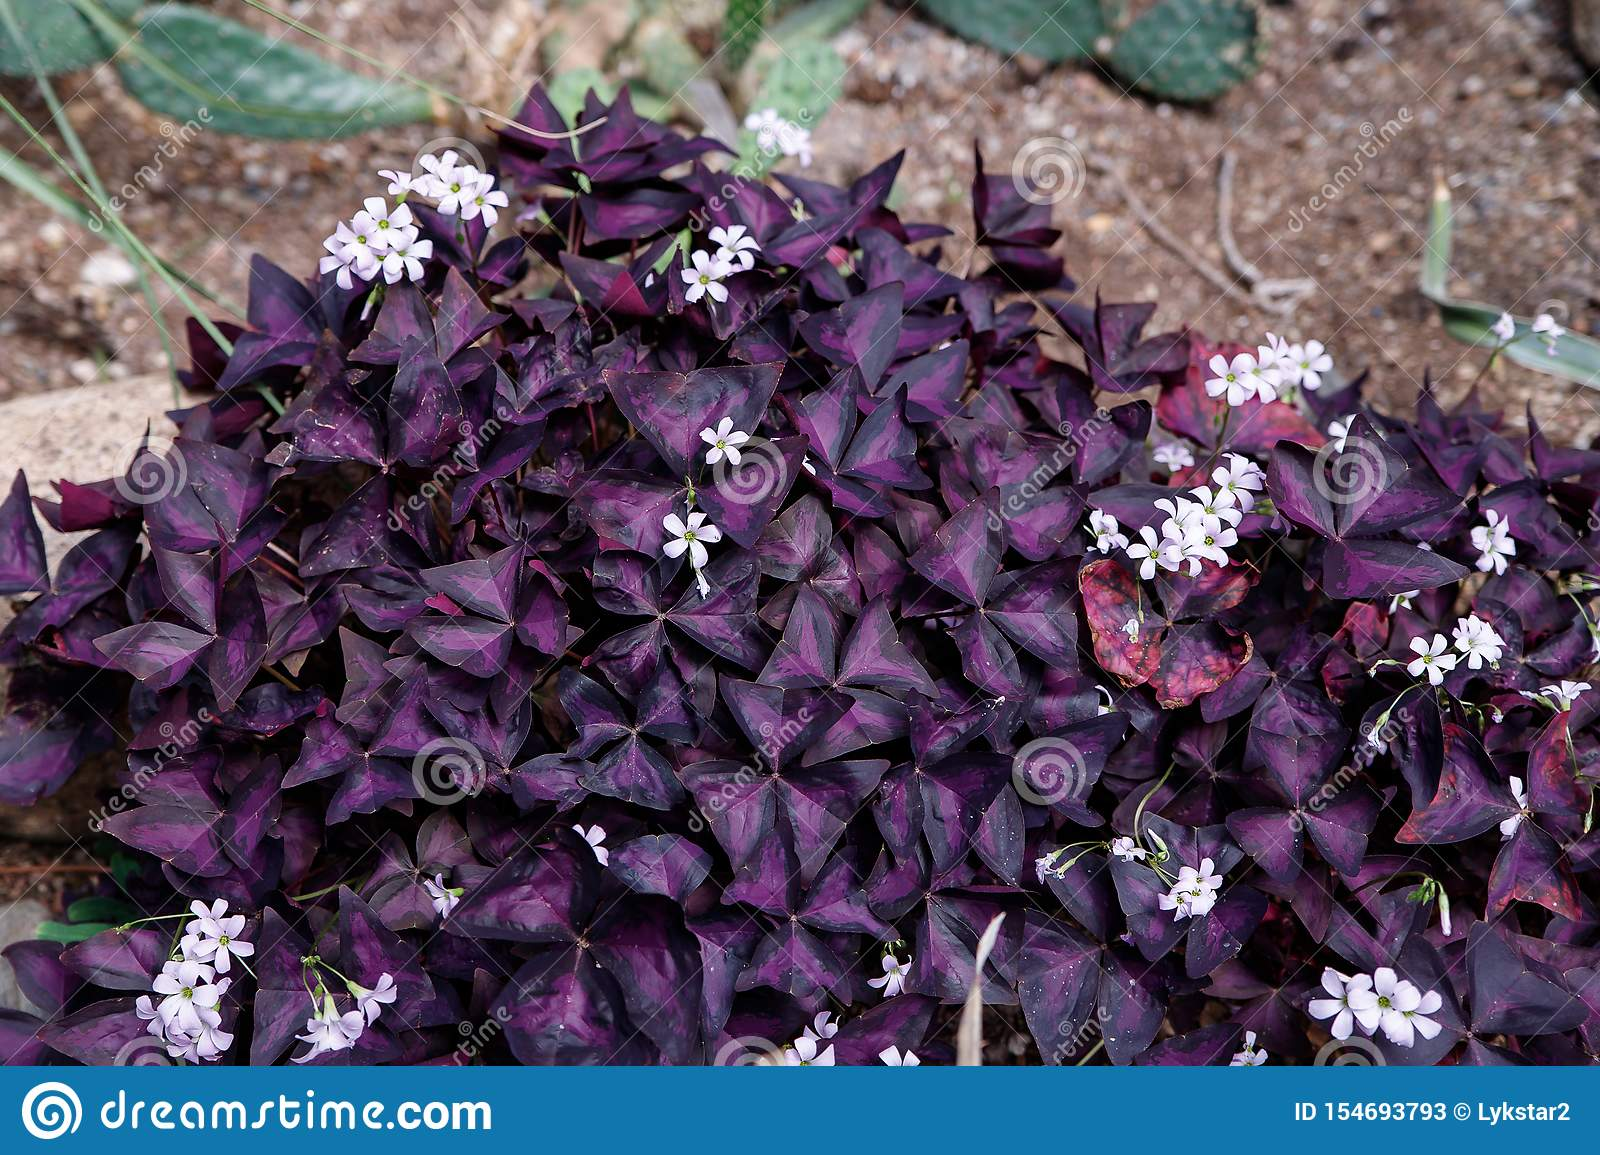 Small Purple Leaves And Pink Flowers Of A Tropical Plant In The